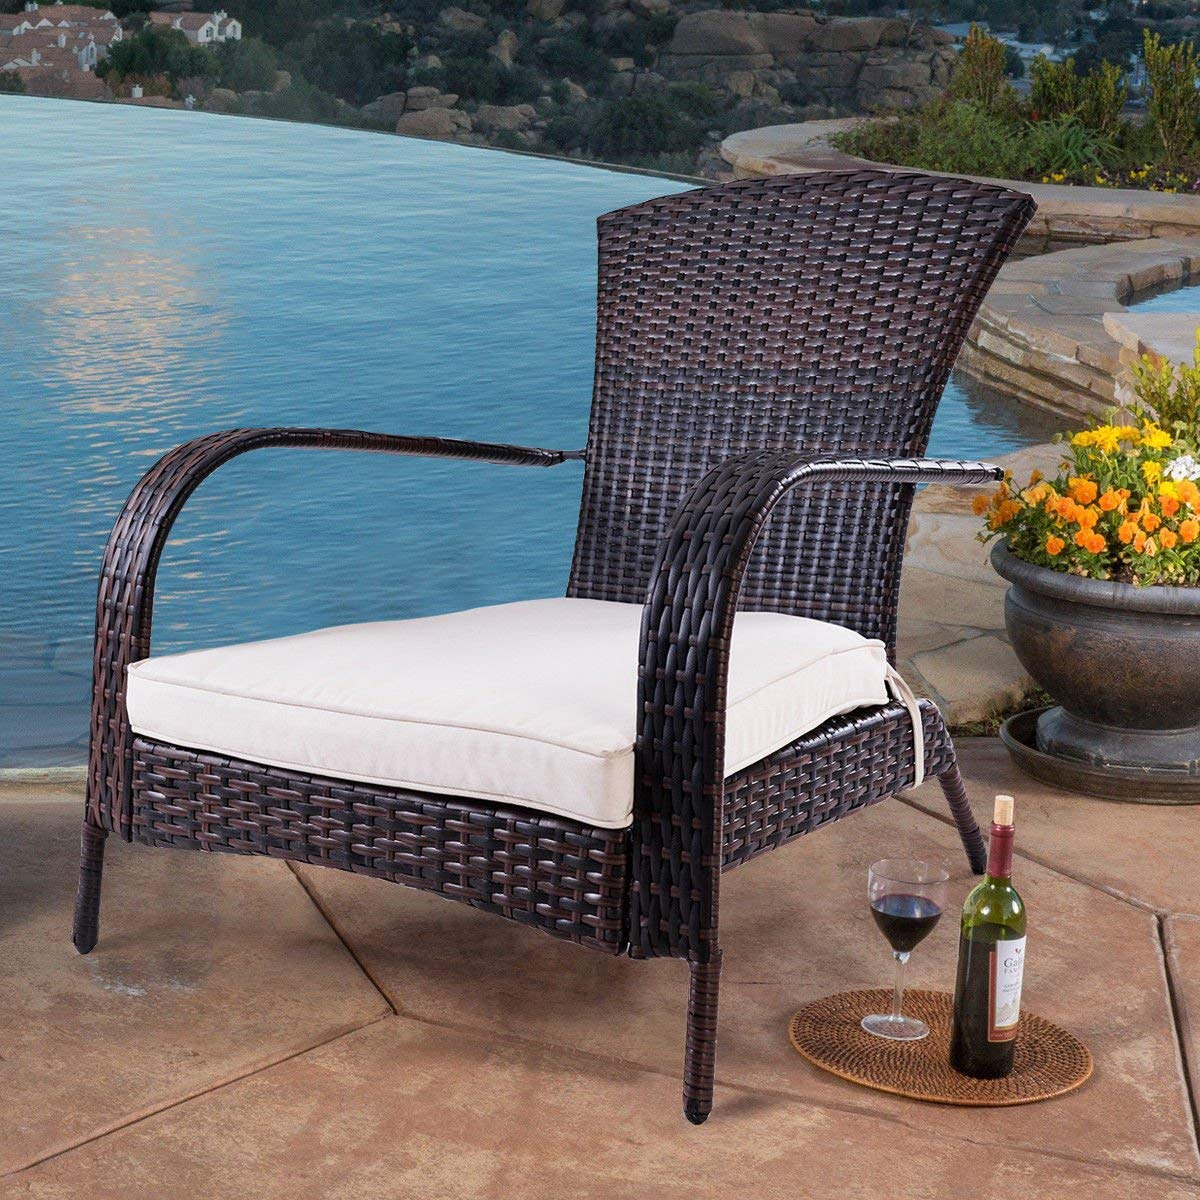 TANGKULA Wicker Adirondack Chair Outdoor Rattan Patio Porch Deck All Weather Furniture with Beige Seat Cushion Wicker Chair Lounger Chaise Small with Beige Cushion